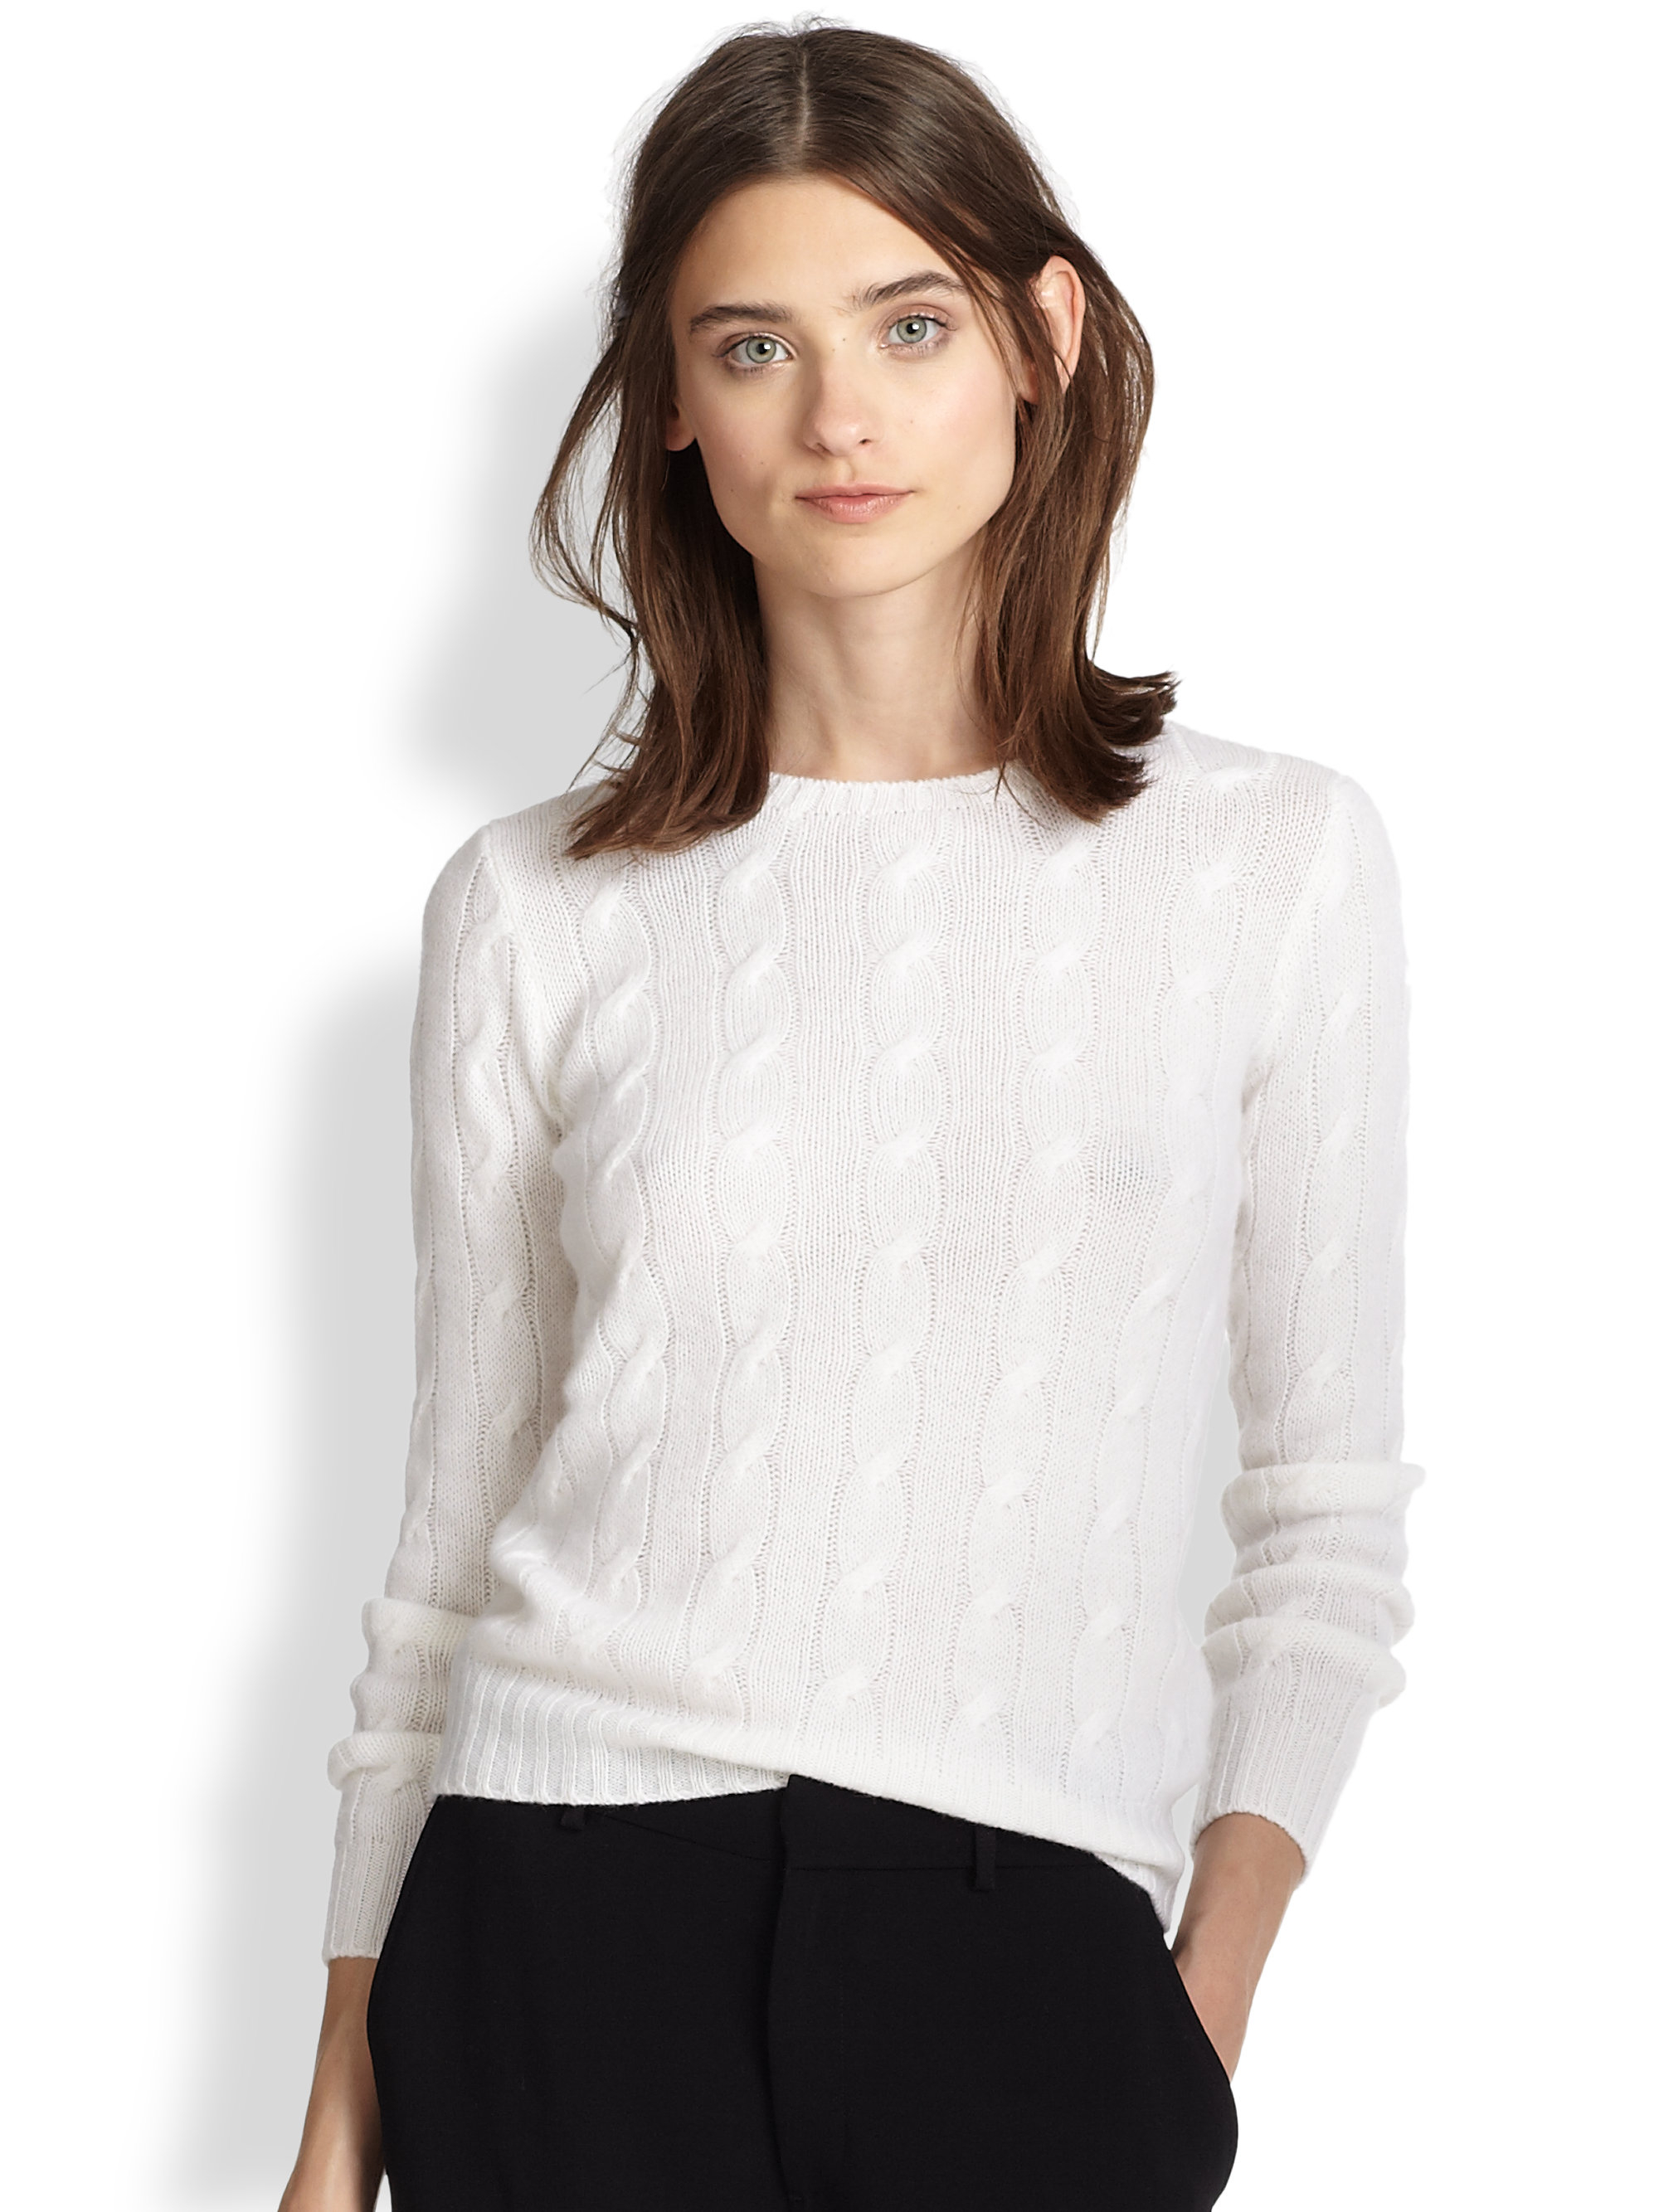 Ralph lauren black label Cable-knit Cashmere Sweater in White | Lyst